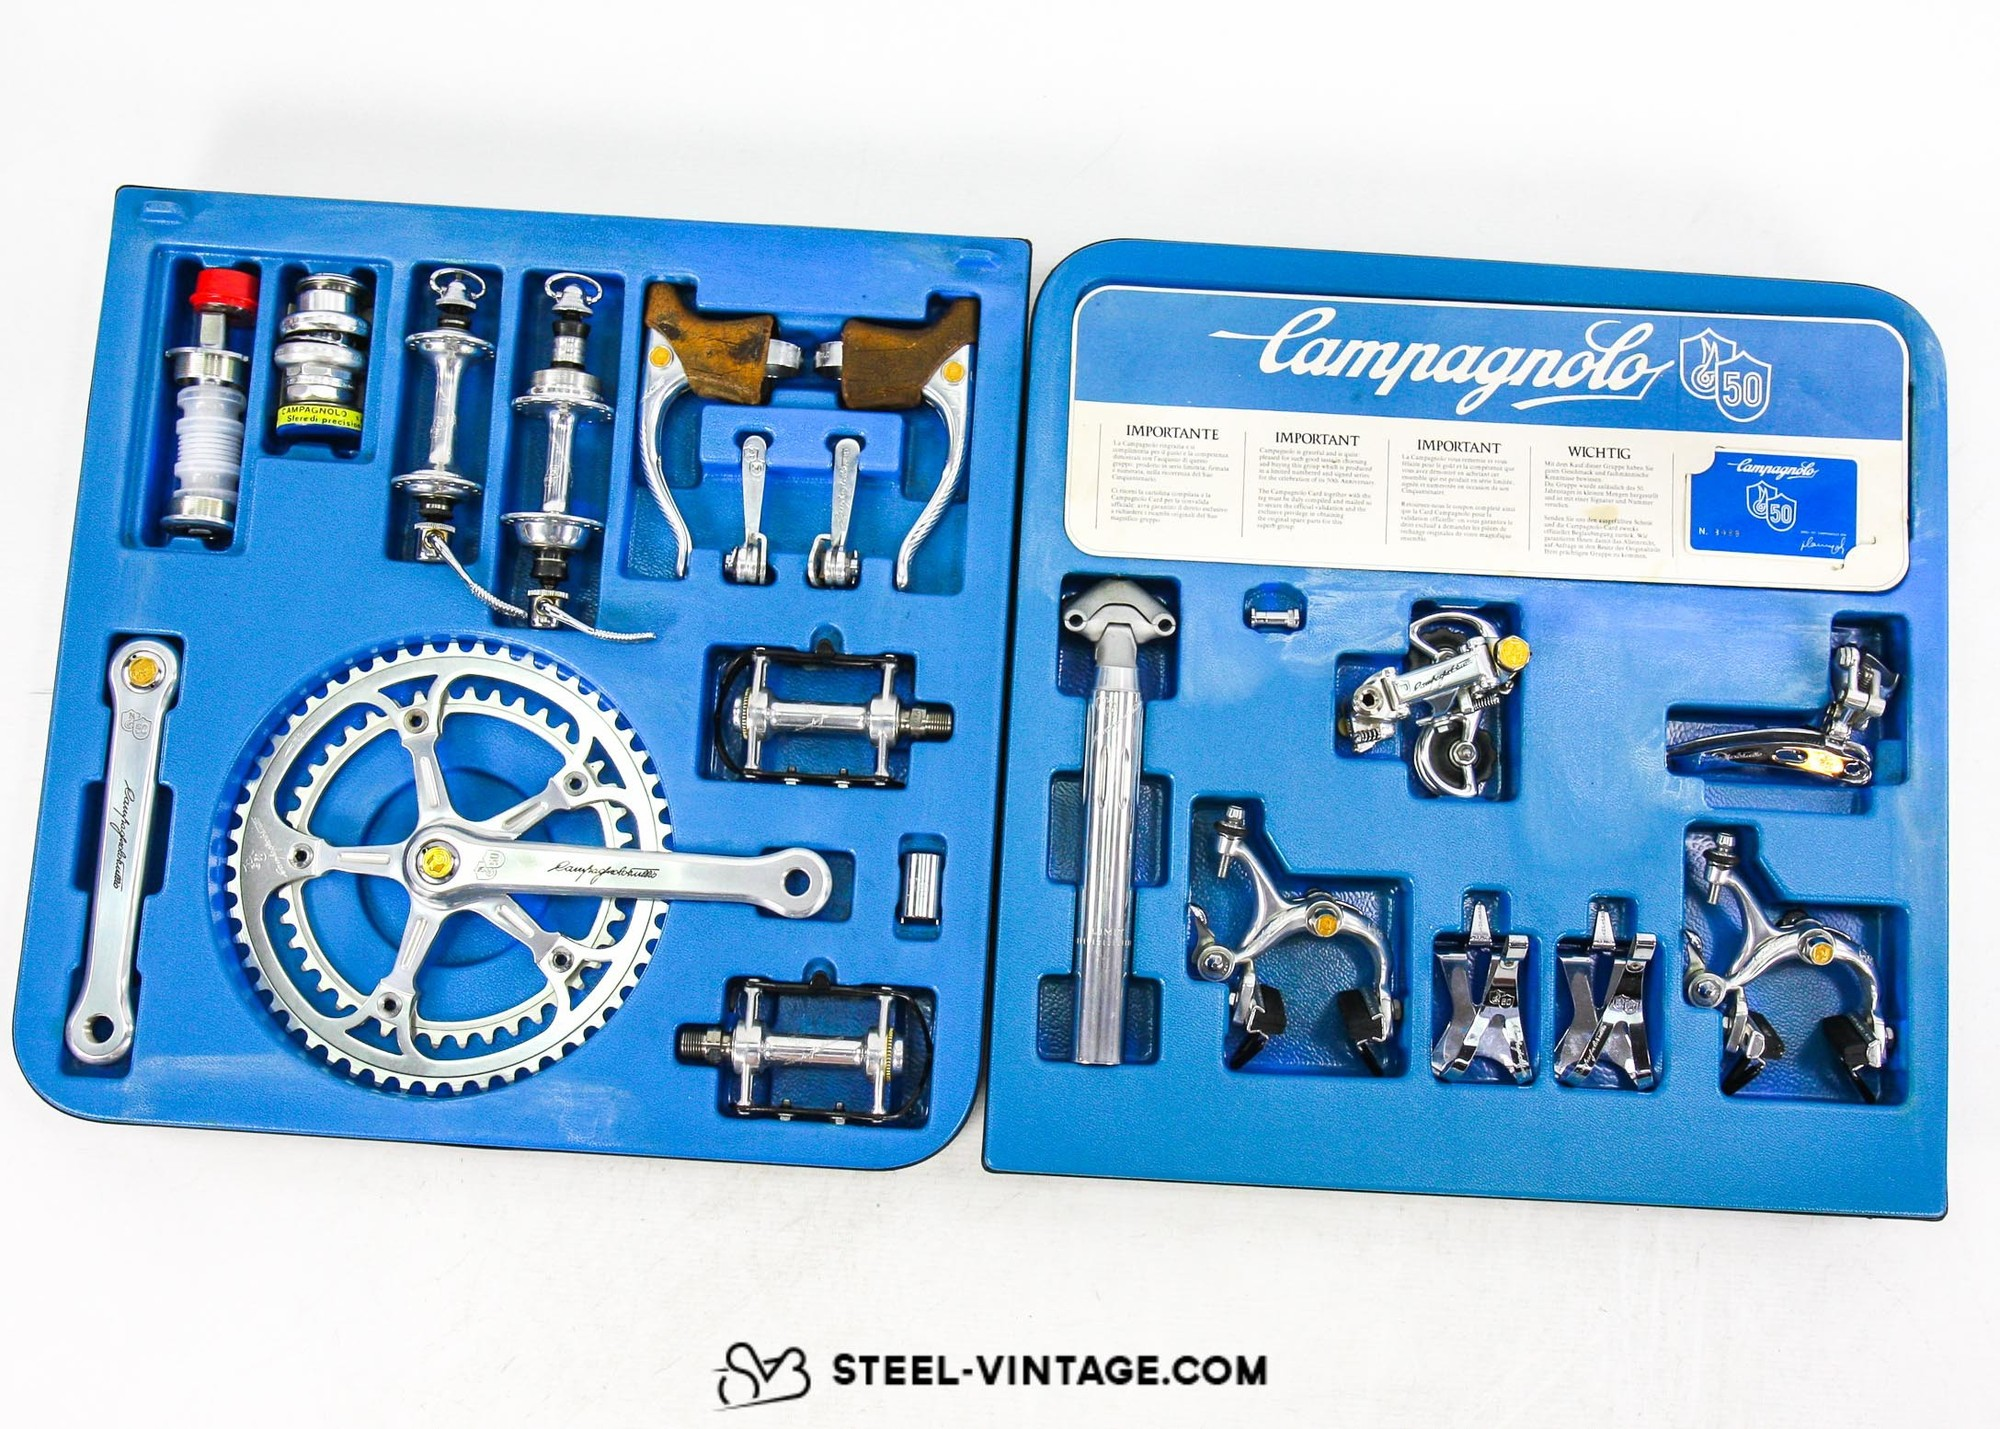 campagnolo-50th-anniversary-groupset-nos-1_1.jpg